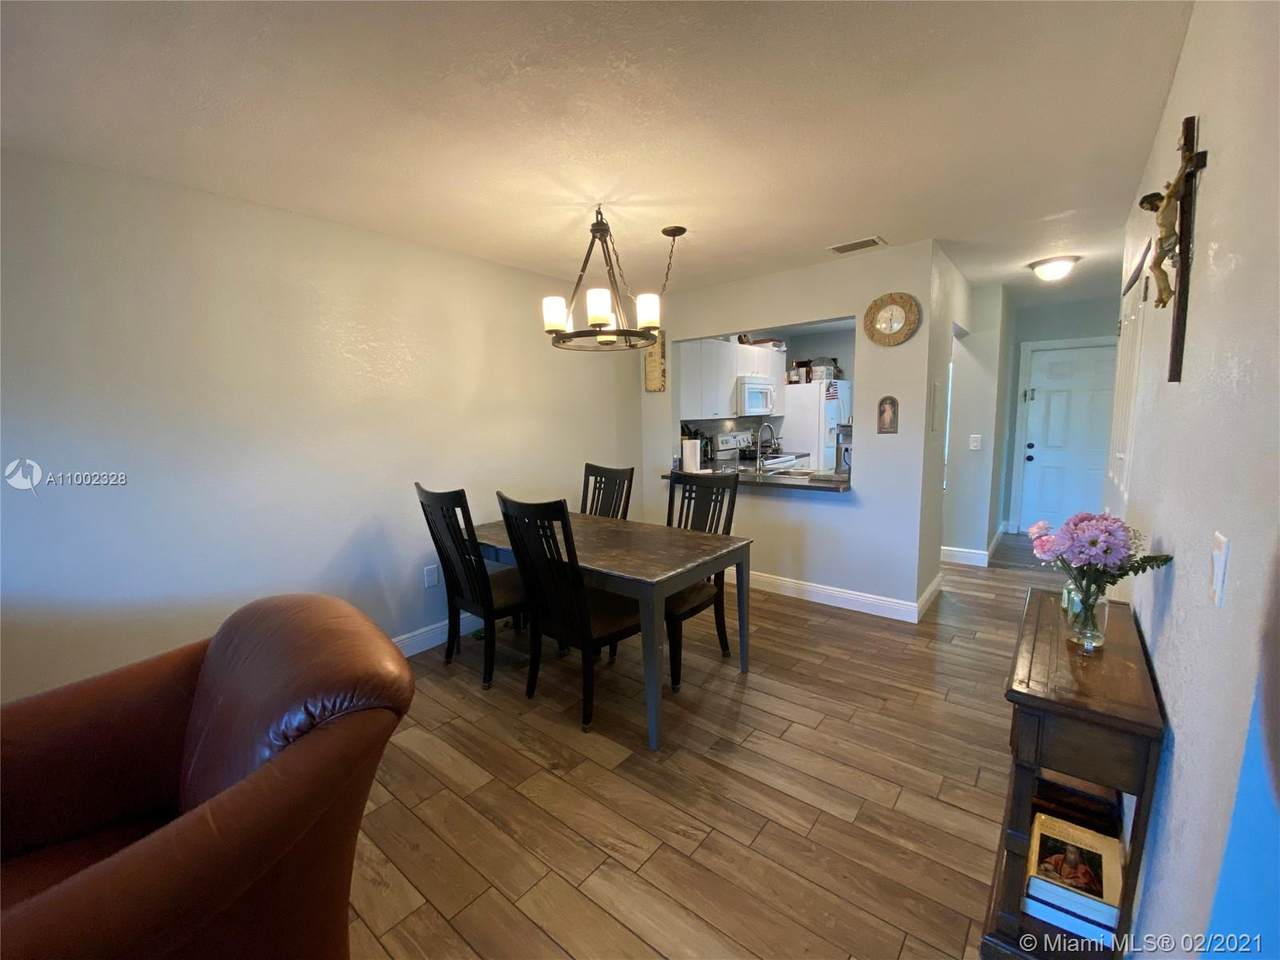 2975 110th Ave - Photo 1